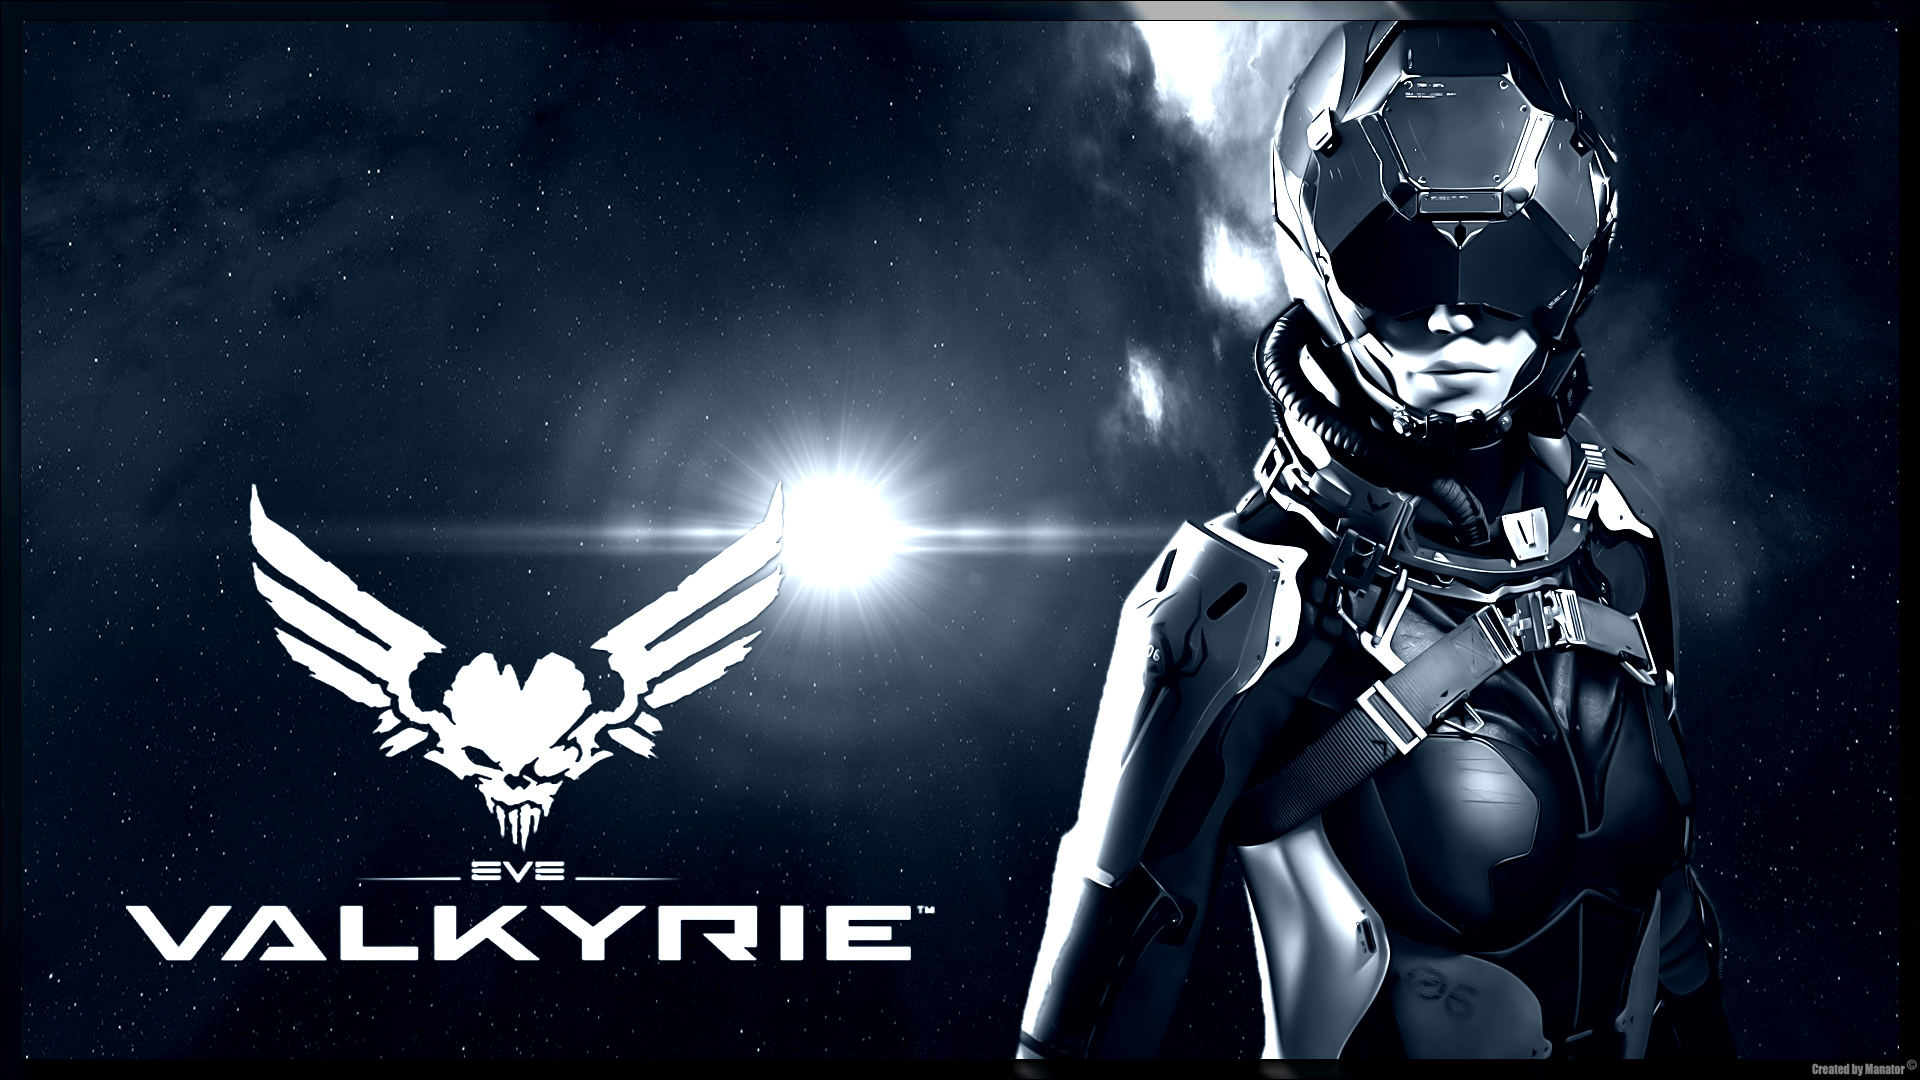 Fiche : EVE Valkyrie